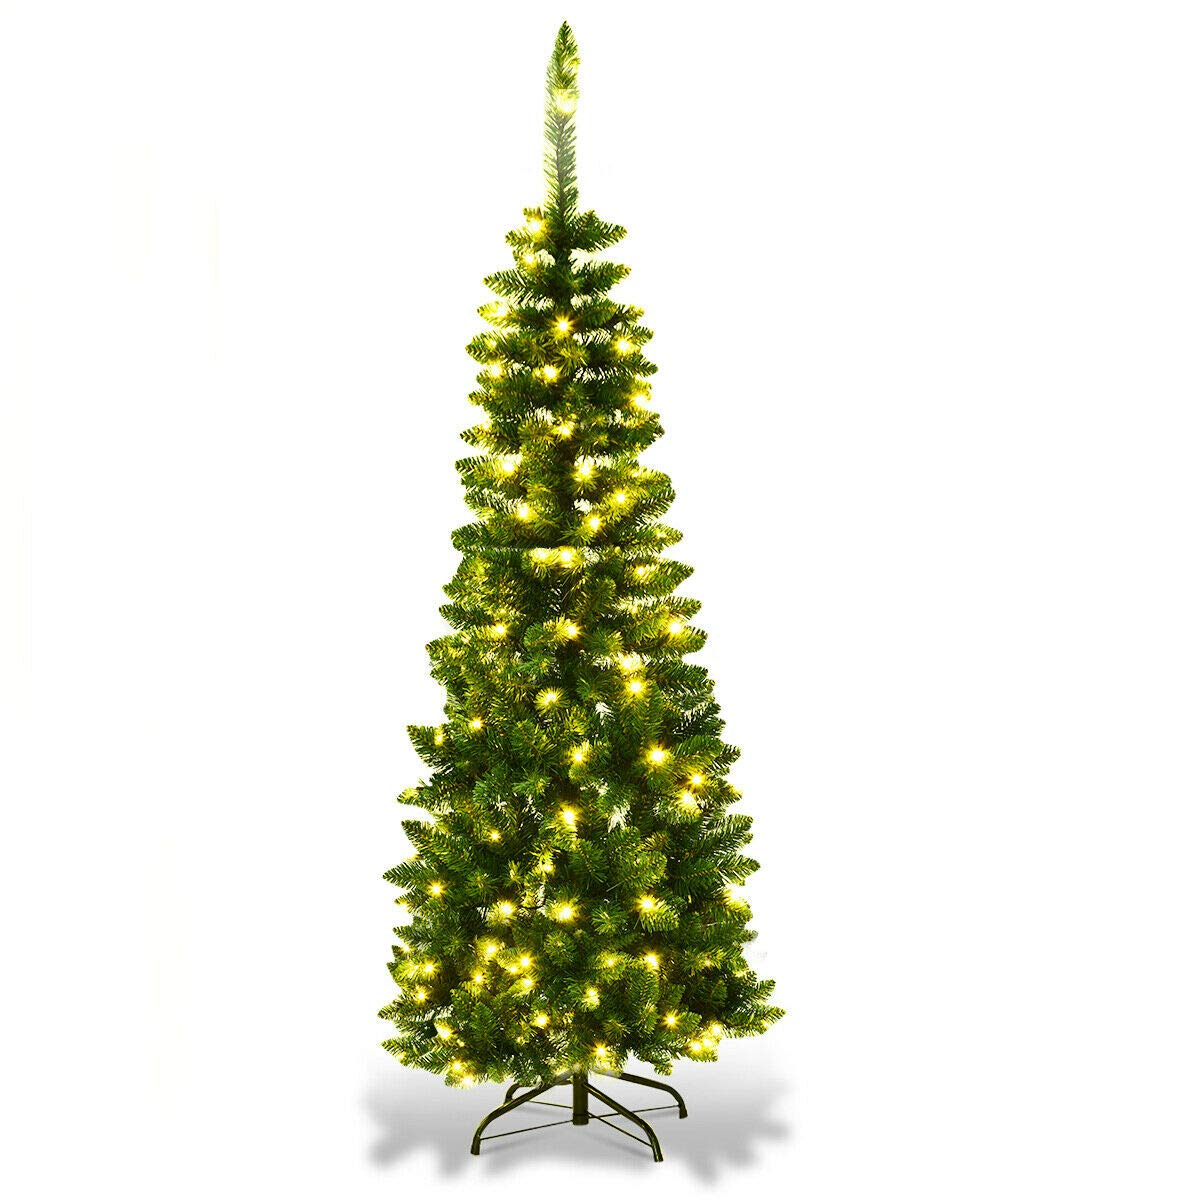 Goplus 4.5ft Prelit Pencil Christmas Tree, Premium Hinged Fir Tree, with LED Lights and Solid Metal Stand, Easy Assemble, Ideal Artificial Xmas Tree for Home and Office, Warm White LED